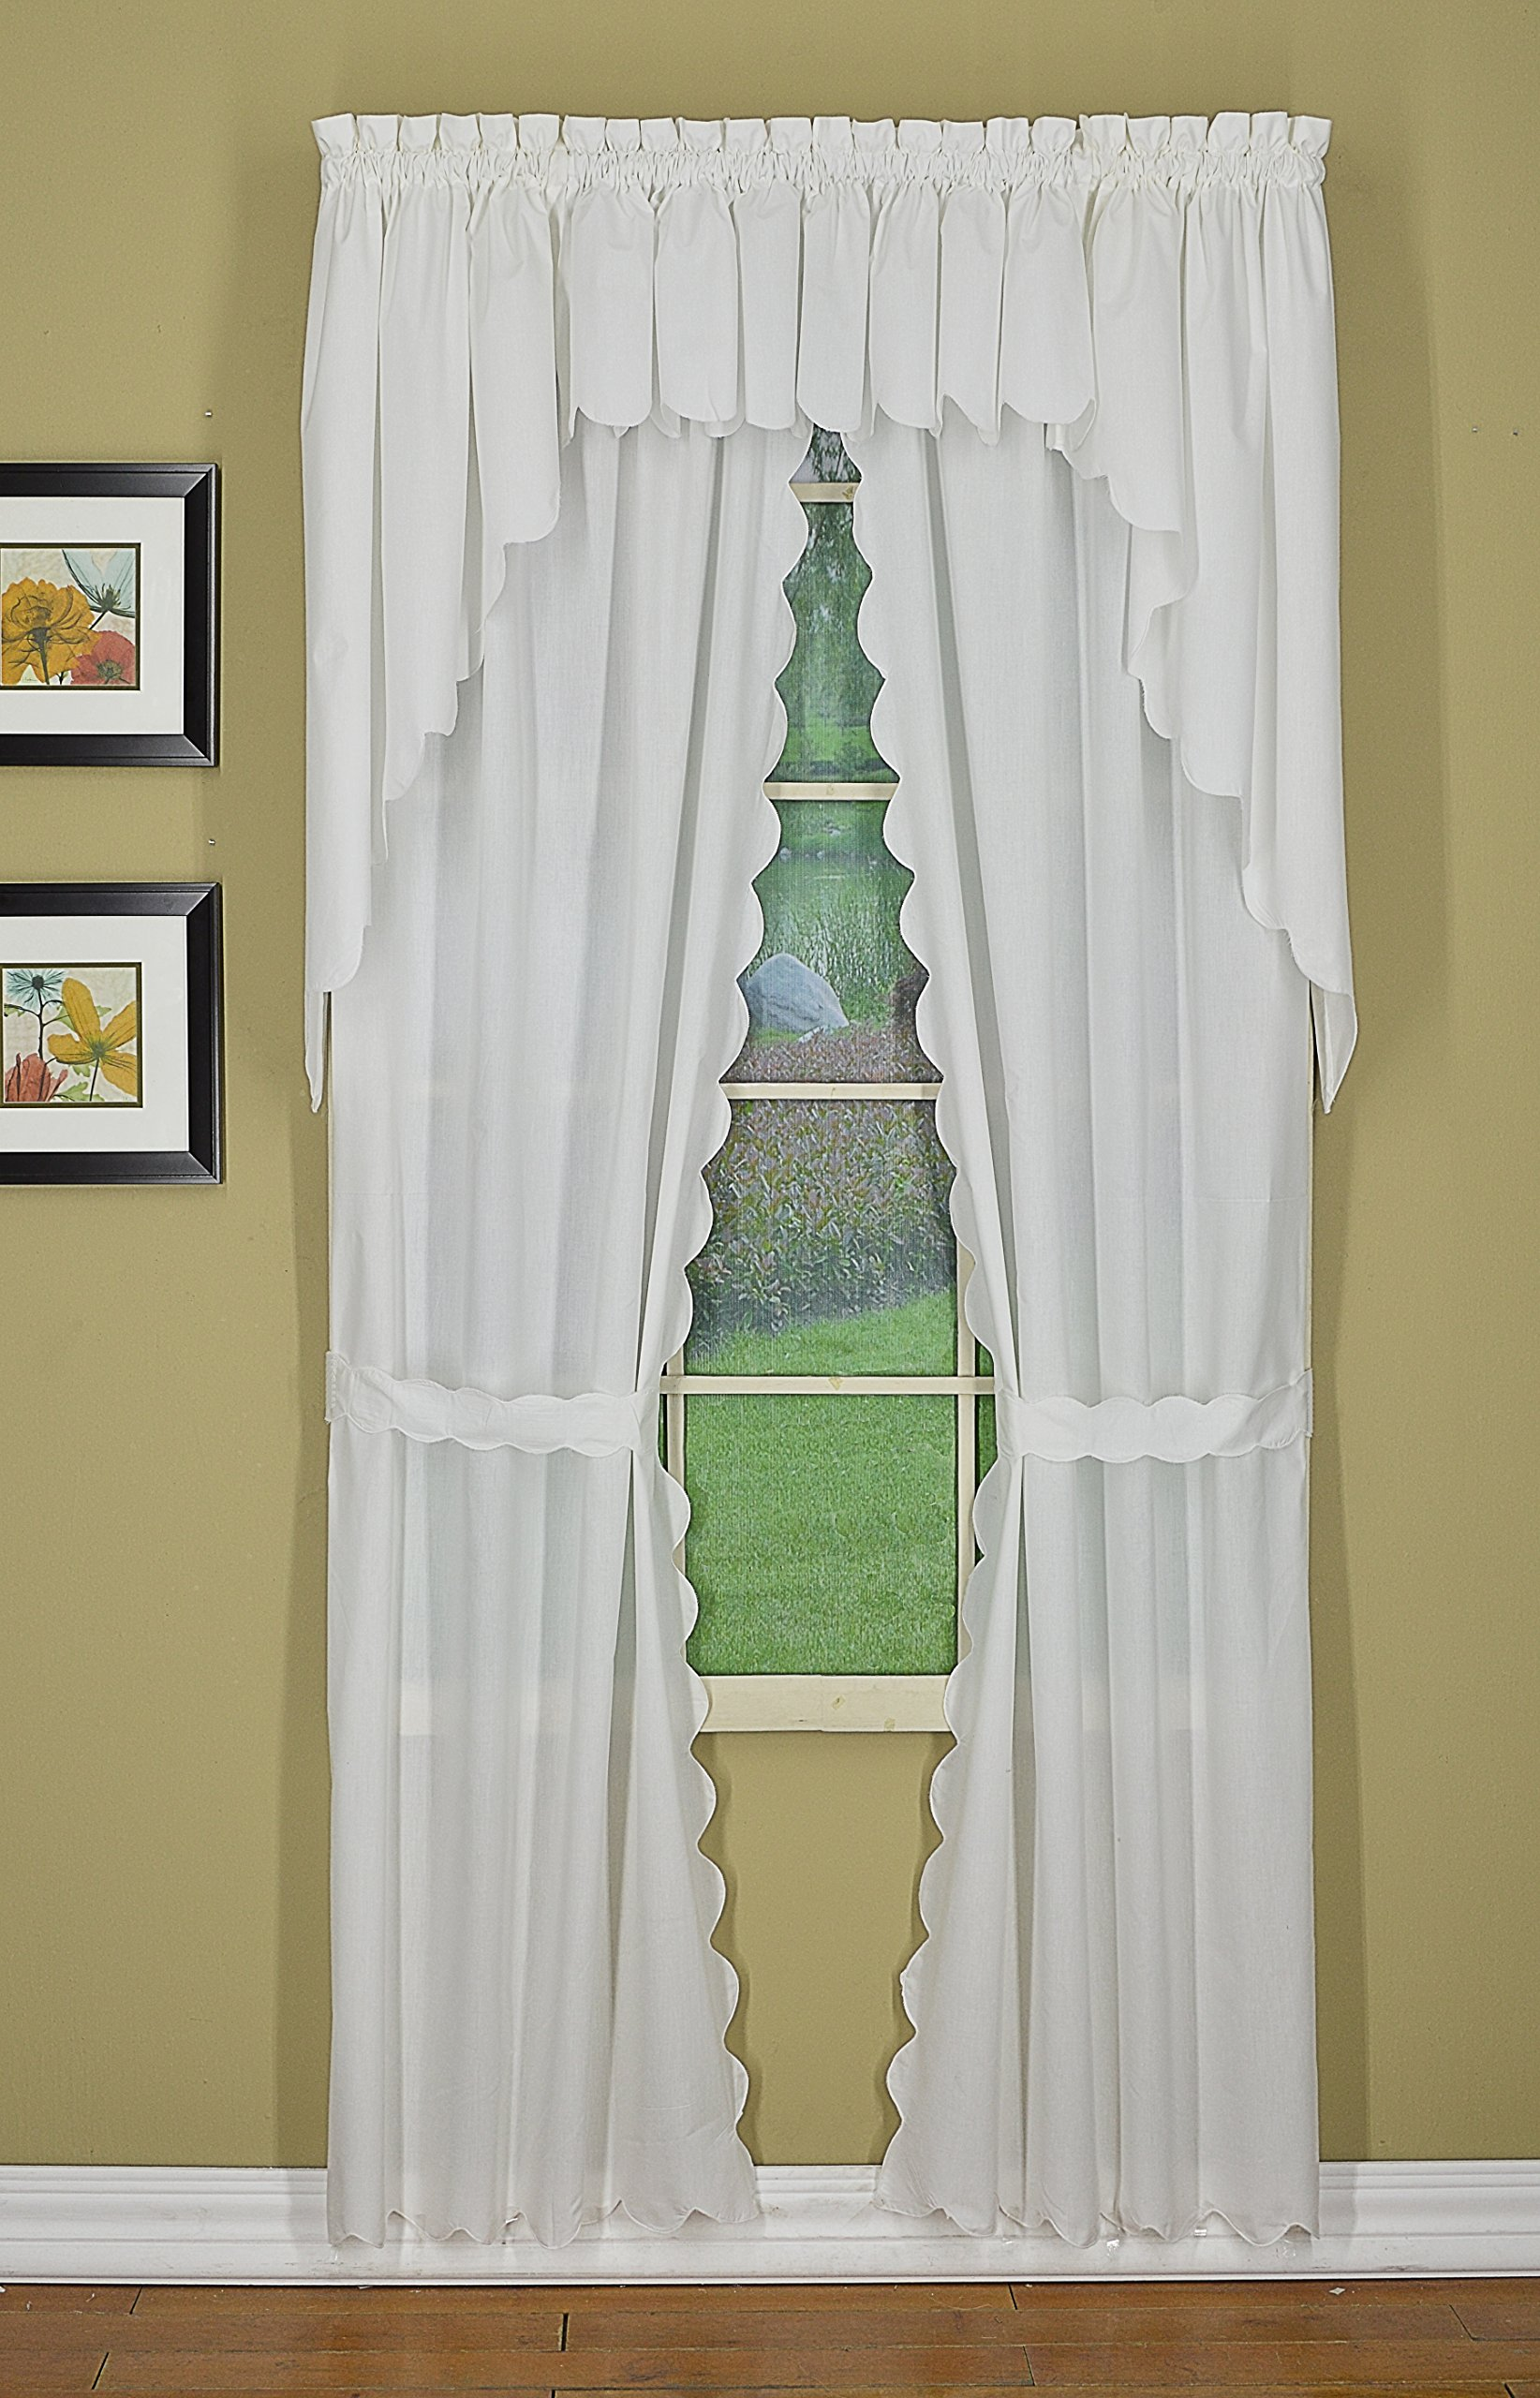 Today's Curtain CA2003K Orleans 54'' Panel Pair with Tiebacks Tambour Scallop Edge Curtain, White, 60'' W x 54'' L/TB